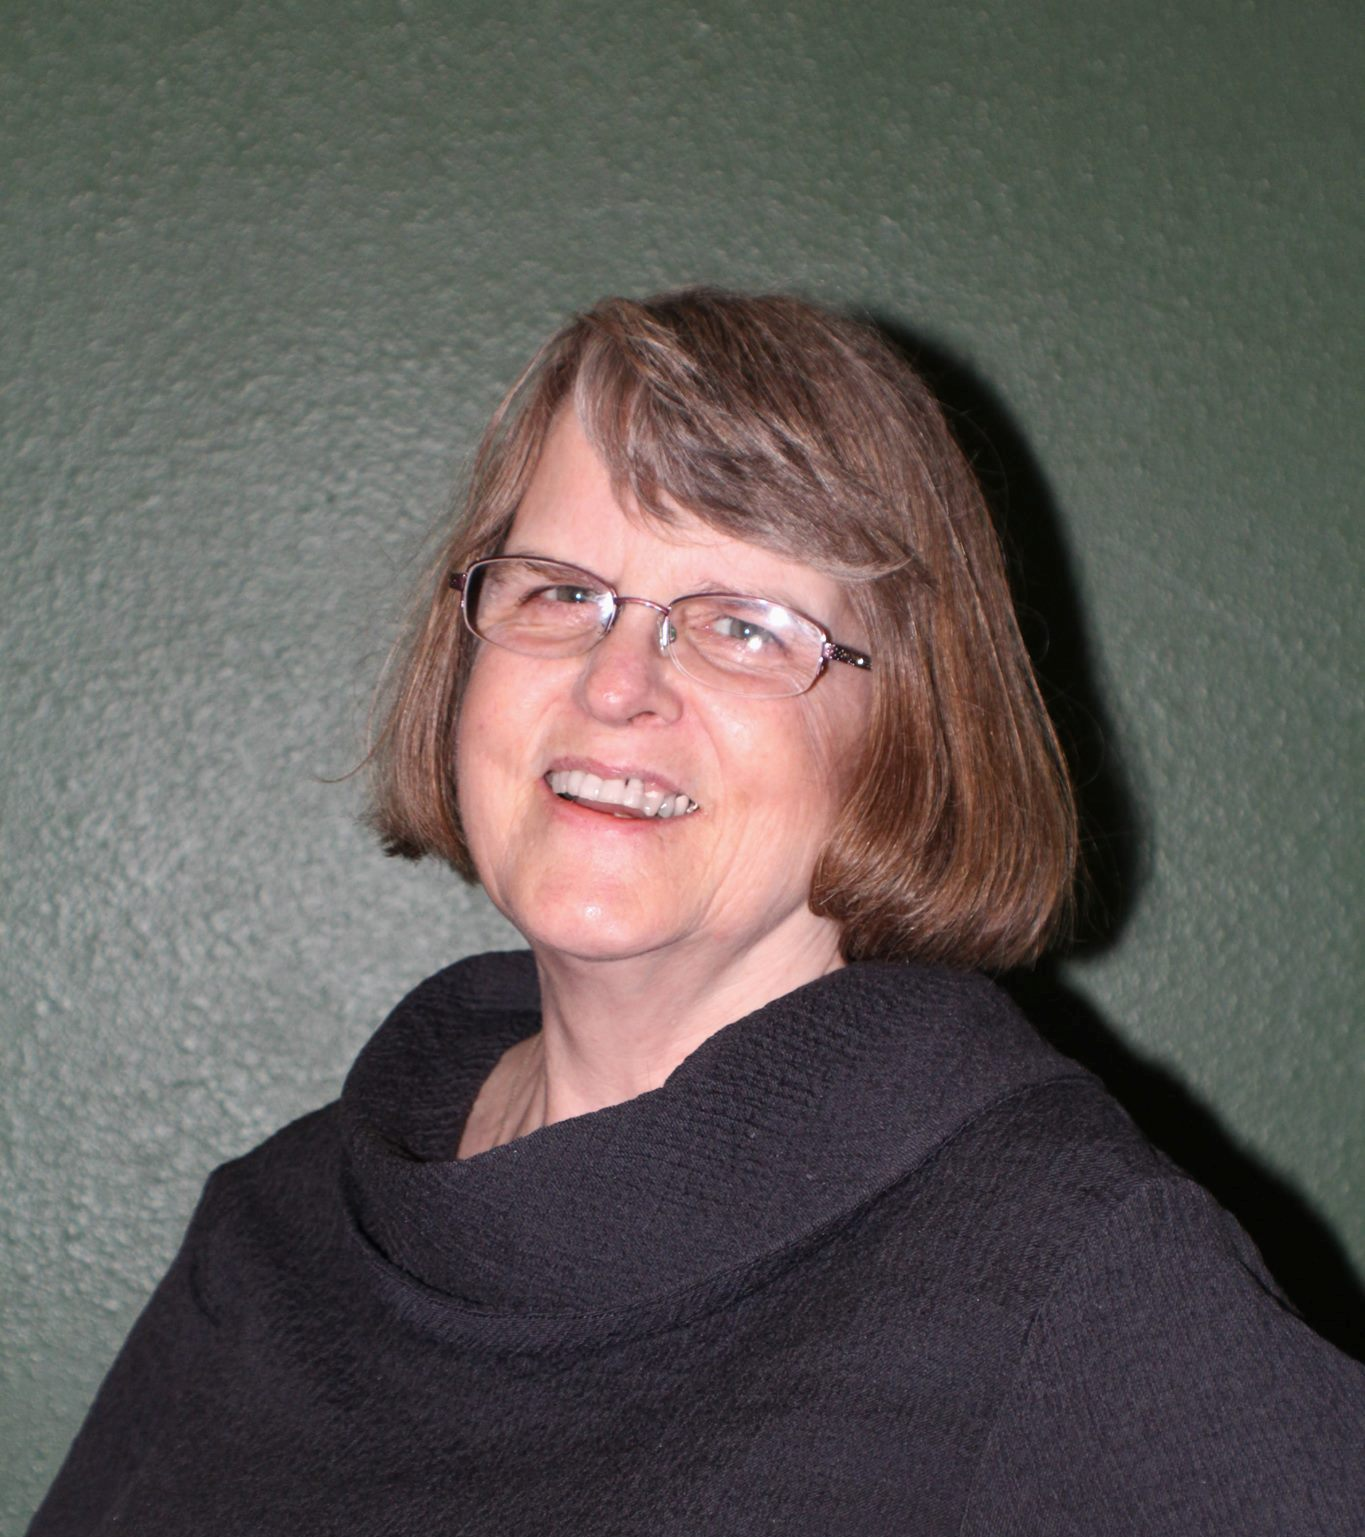 Cathy Christensen